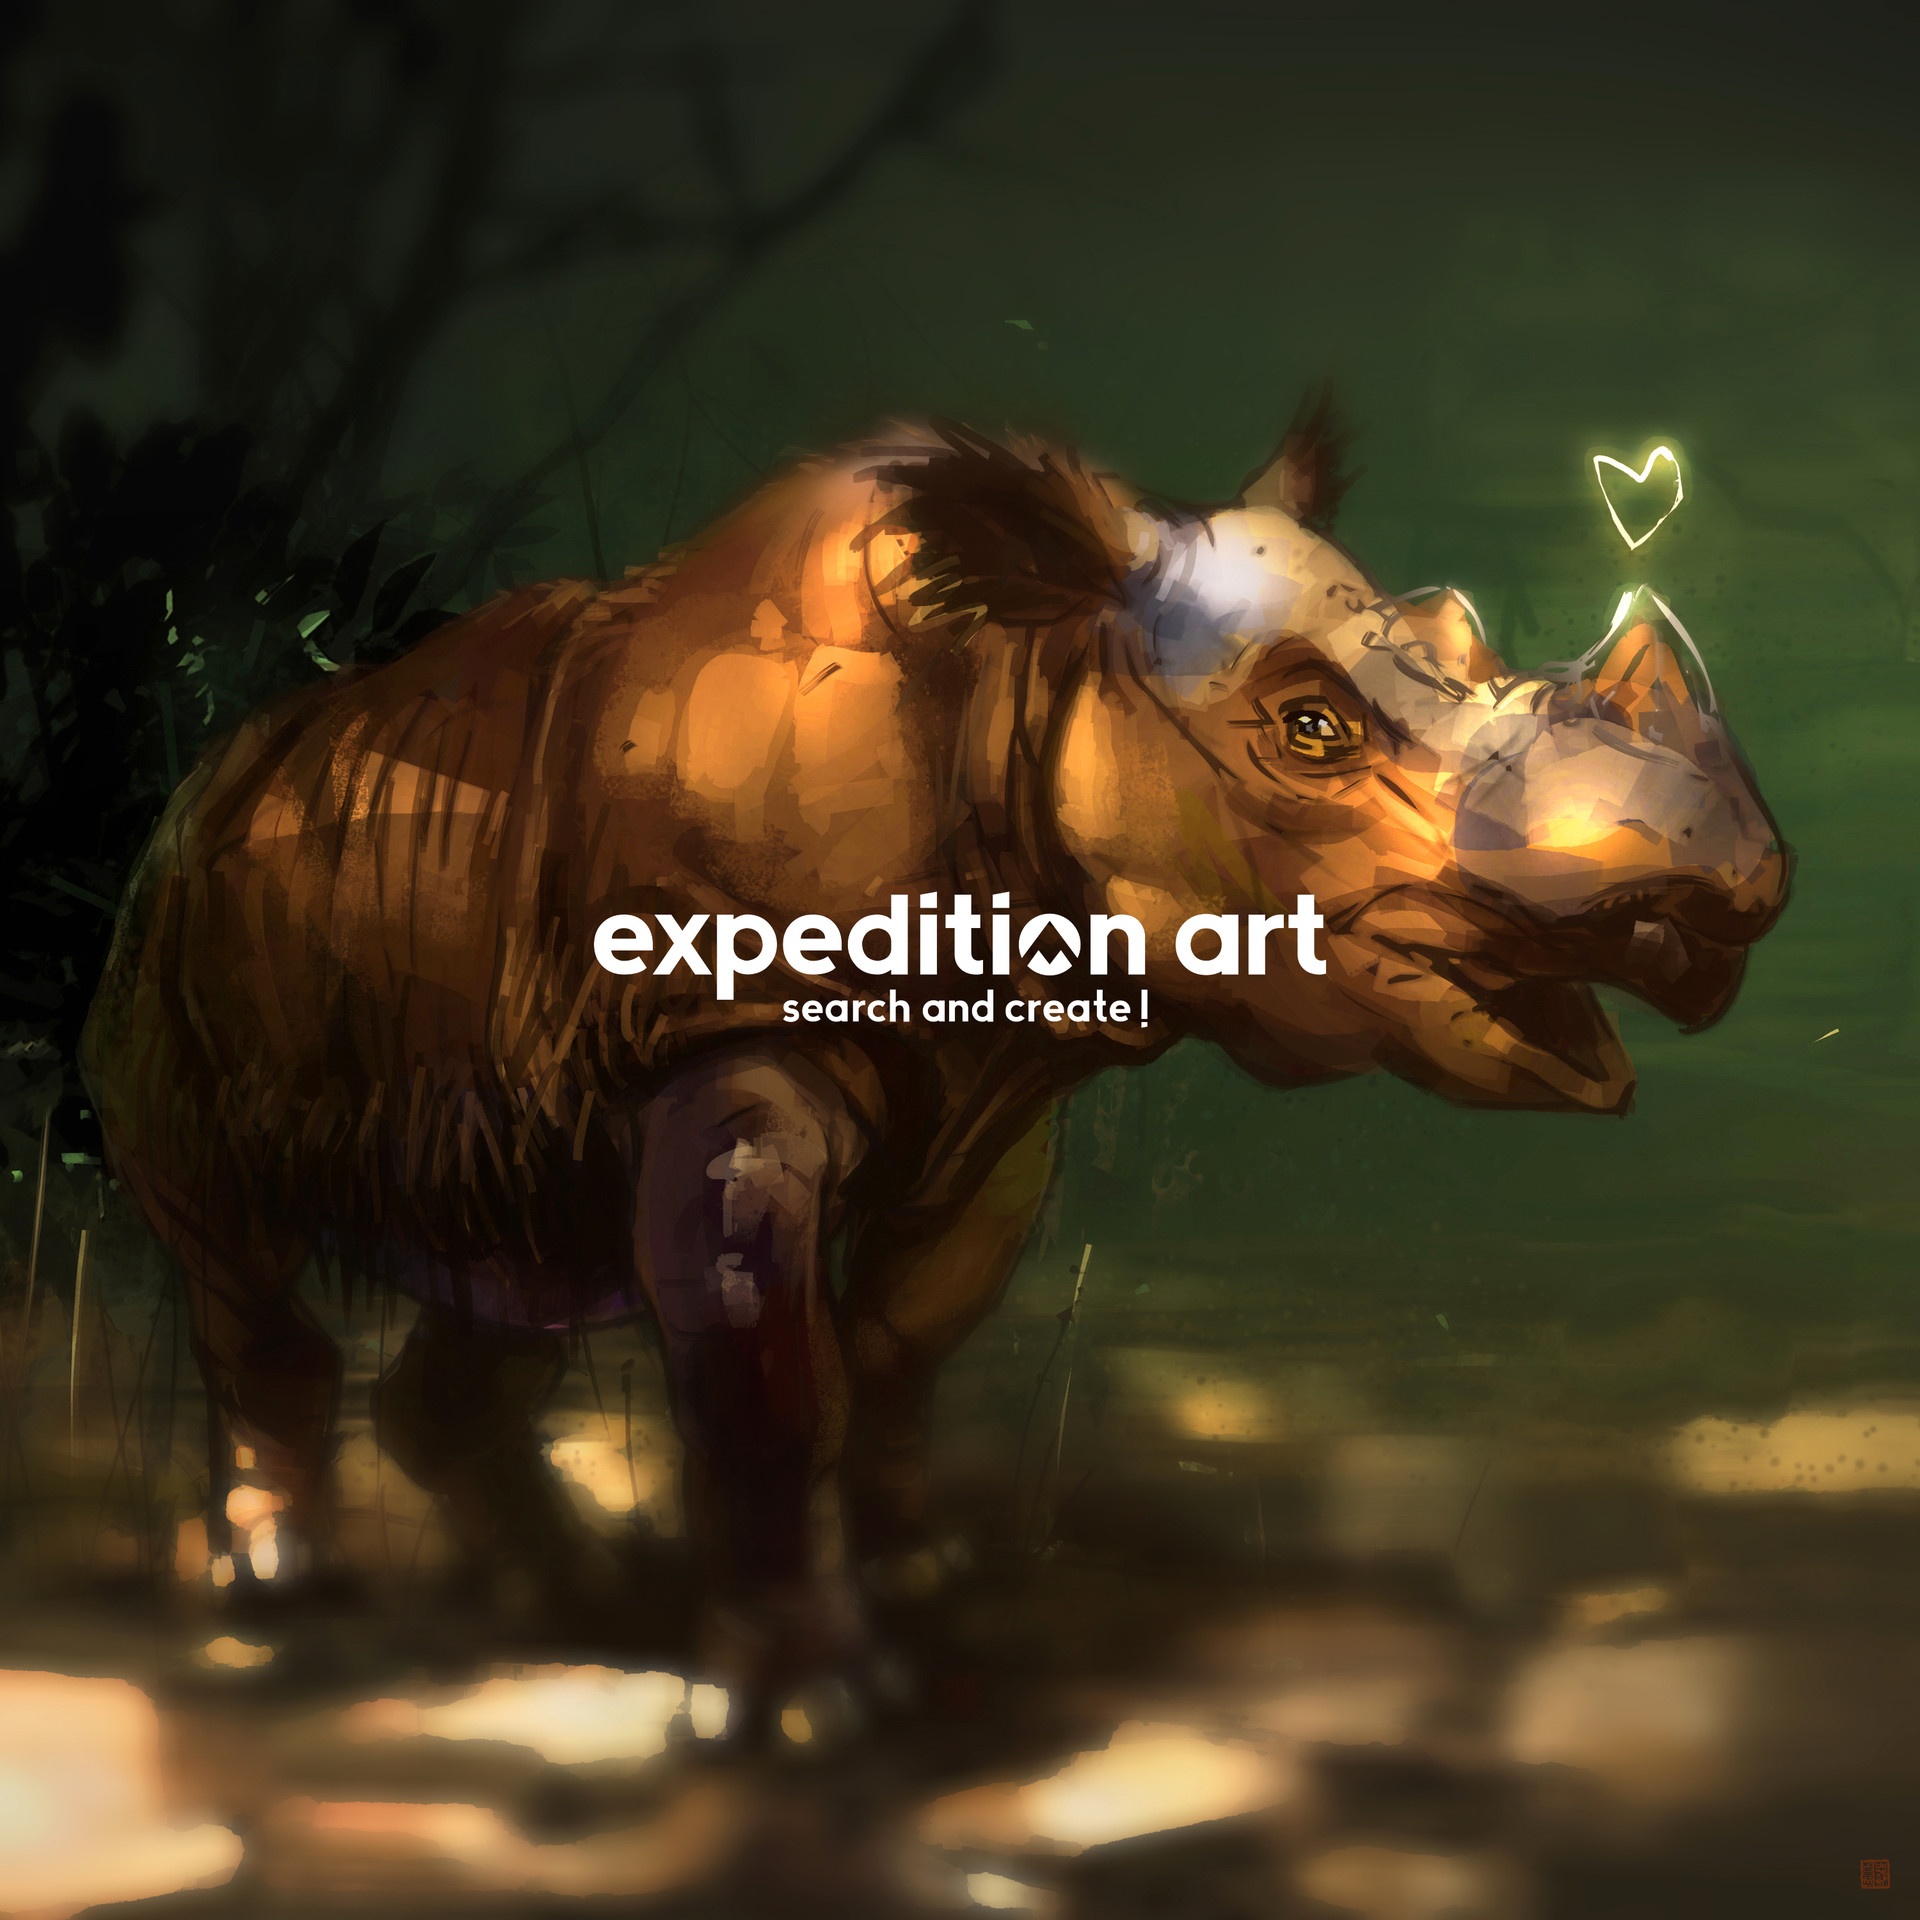 Thierry doizon expeditionart barontieri rhino03 10